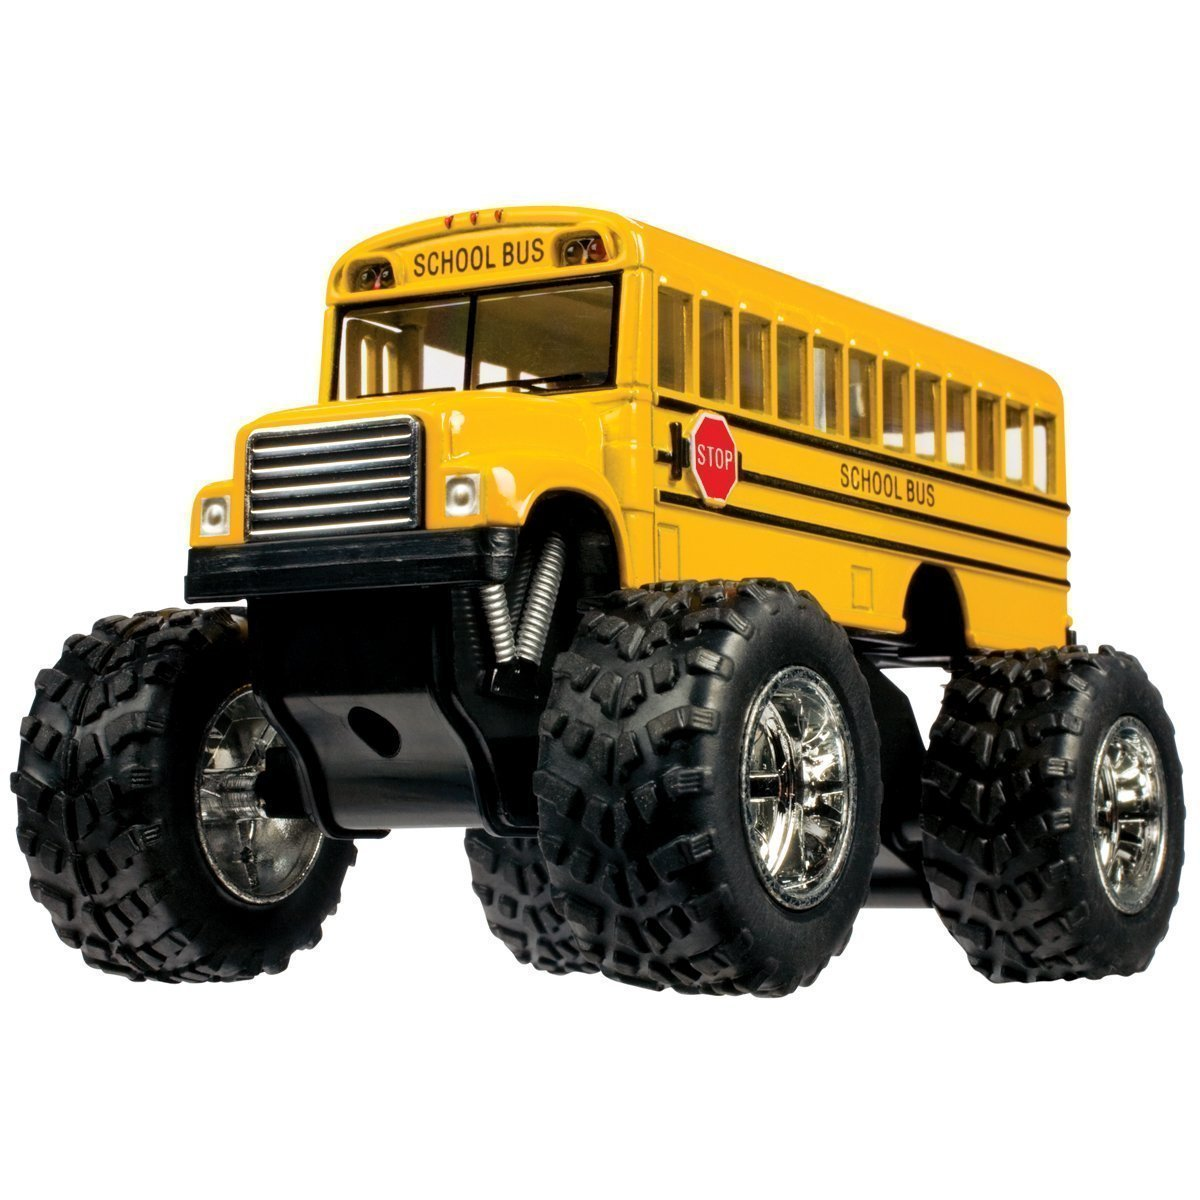 Diecast Metal School Bus Big Wheel Monster Truck Toy (1), Sold By The